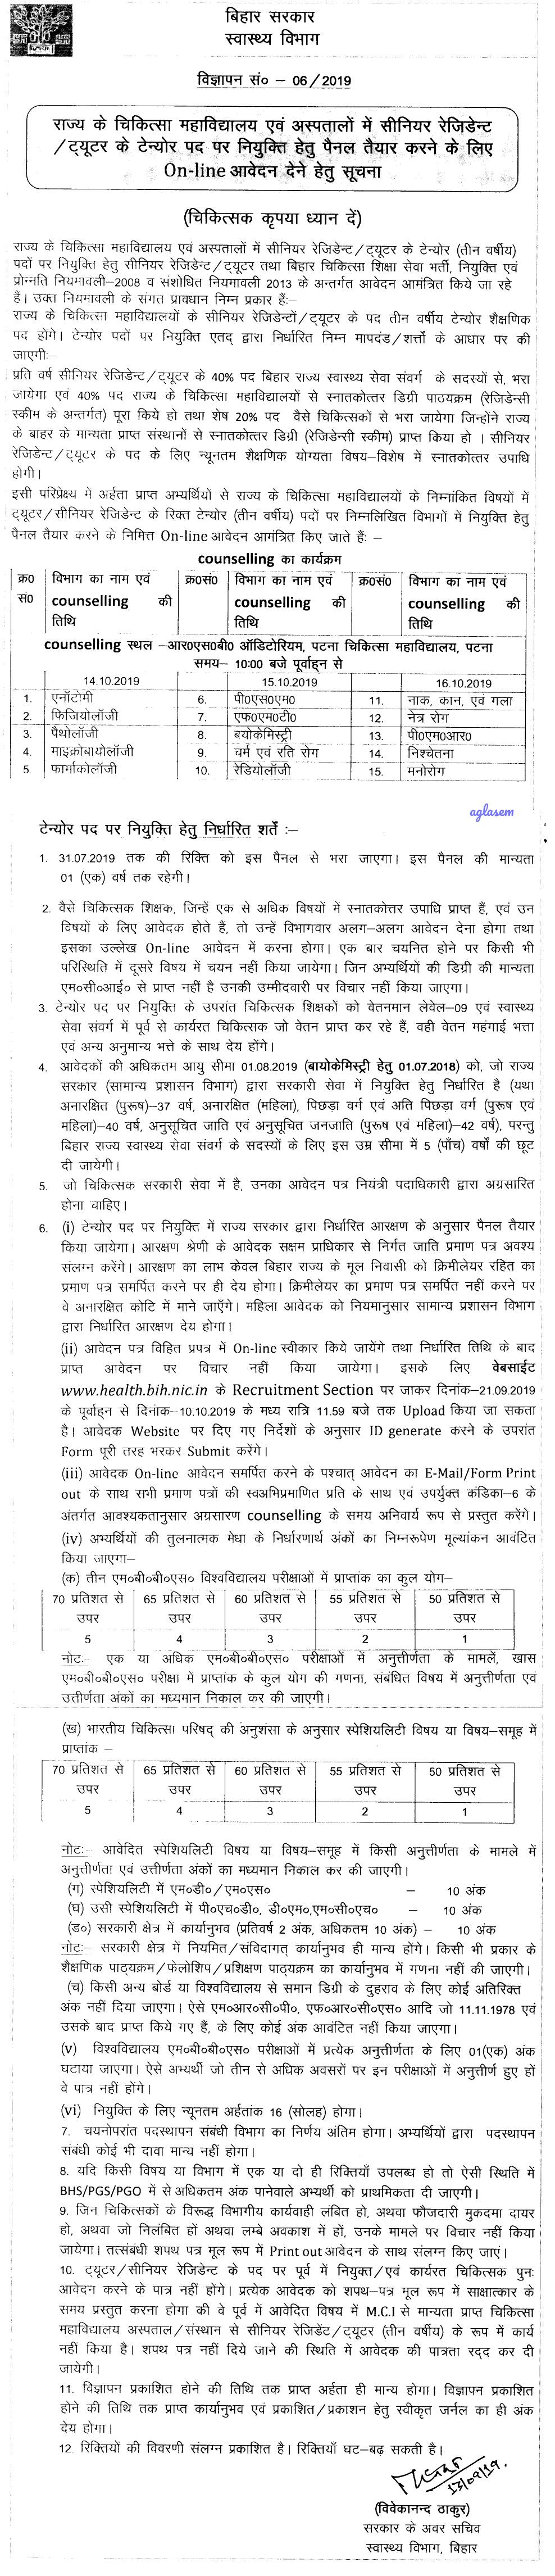 Bihar Health Department recruitment 2019 online application form out for 1056 SR, Tutor vacancies; Apply now @ health.bih.nic.in